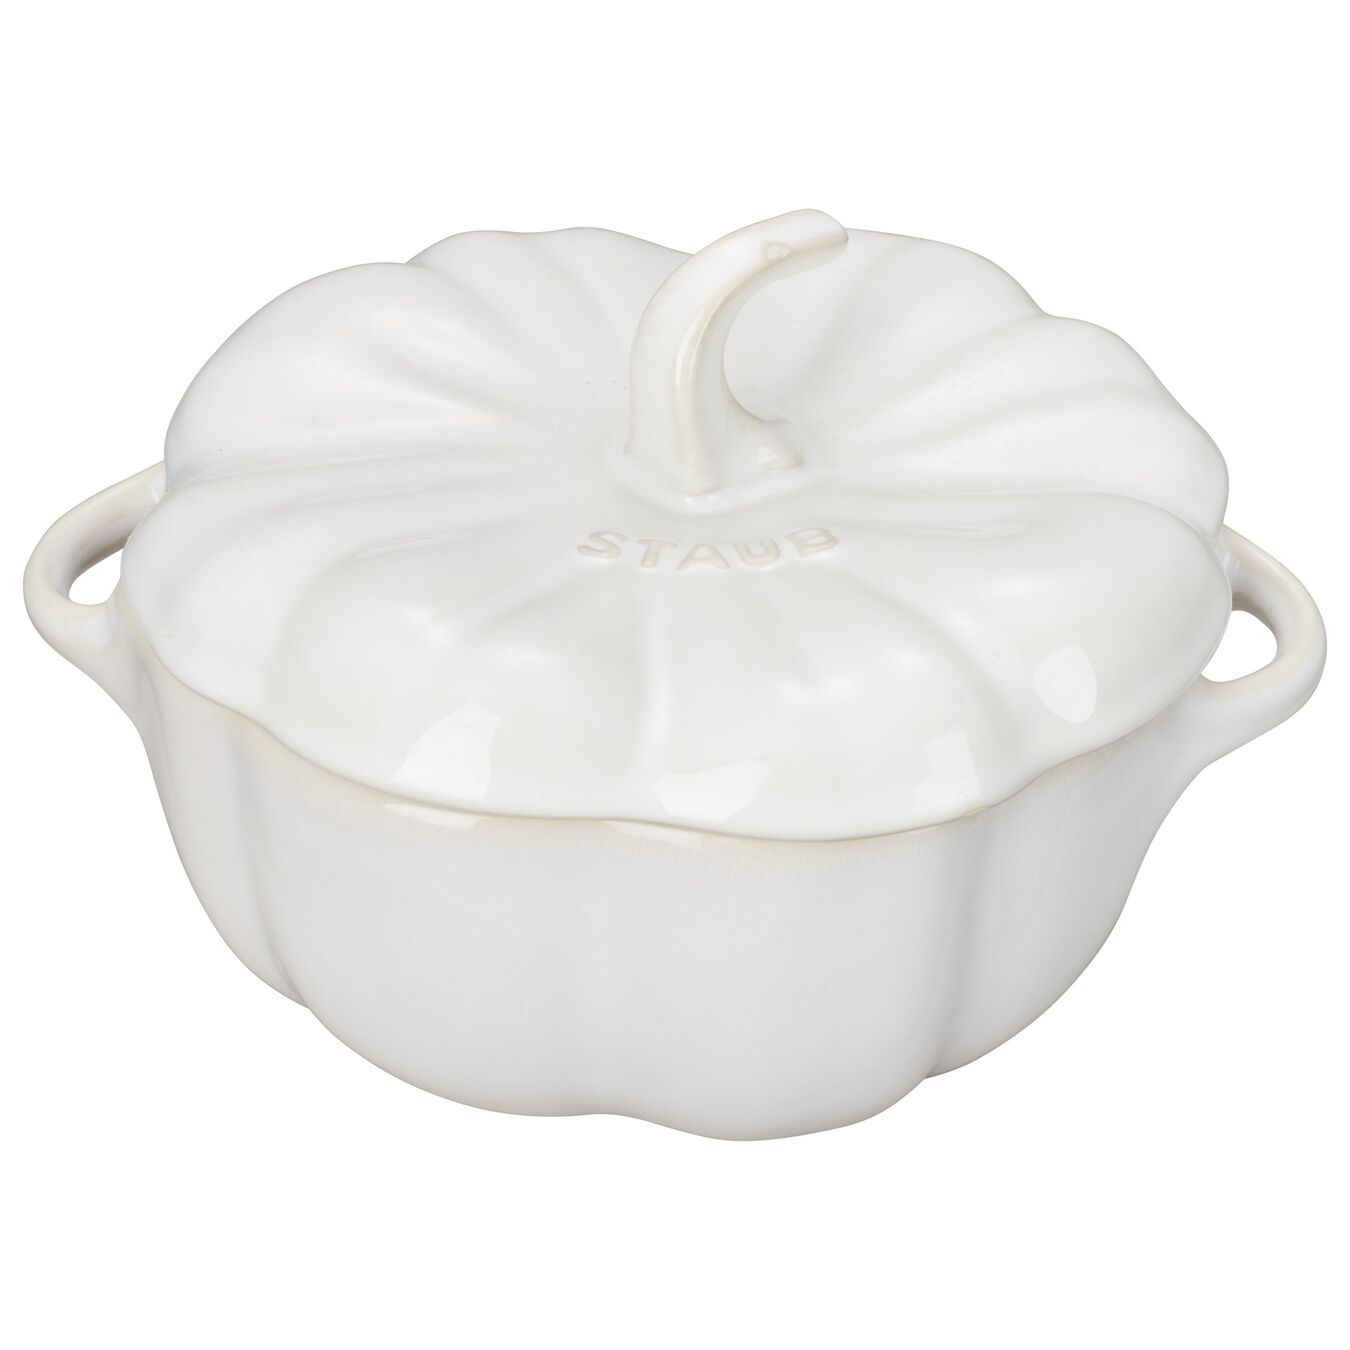 700 ml Ceramic Citrouille Faitout, Ivory-White,,large 1